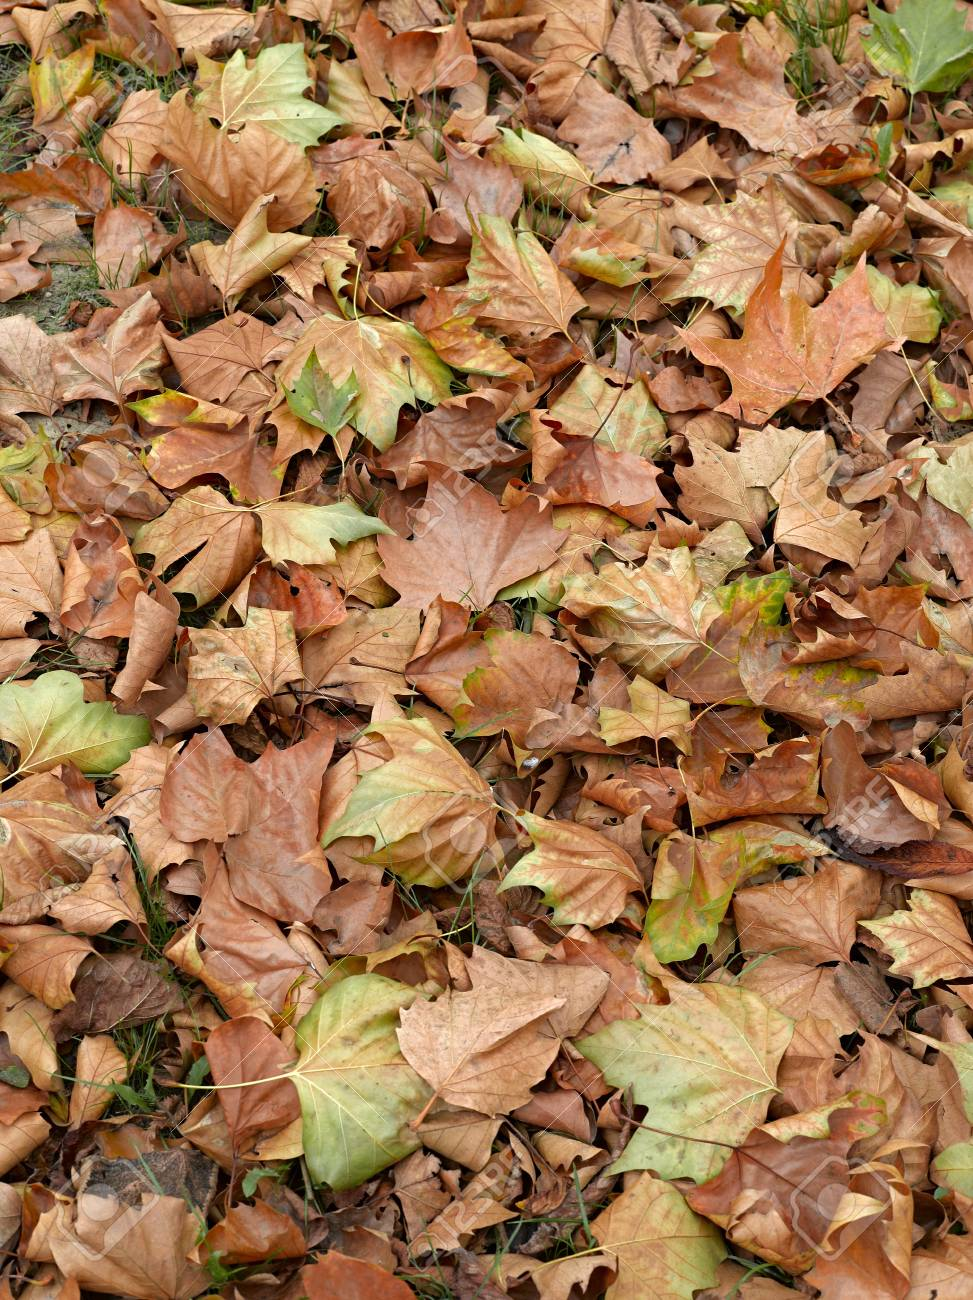 Dead leaves shot ideal for backgrounds and textures Stock Photo - 19376041